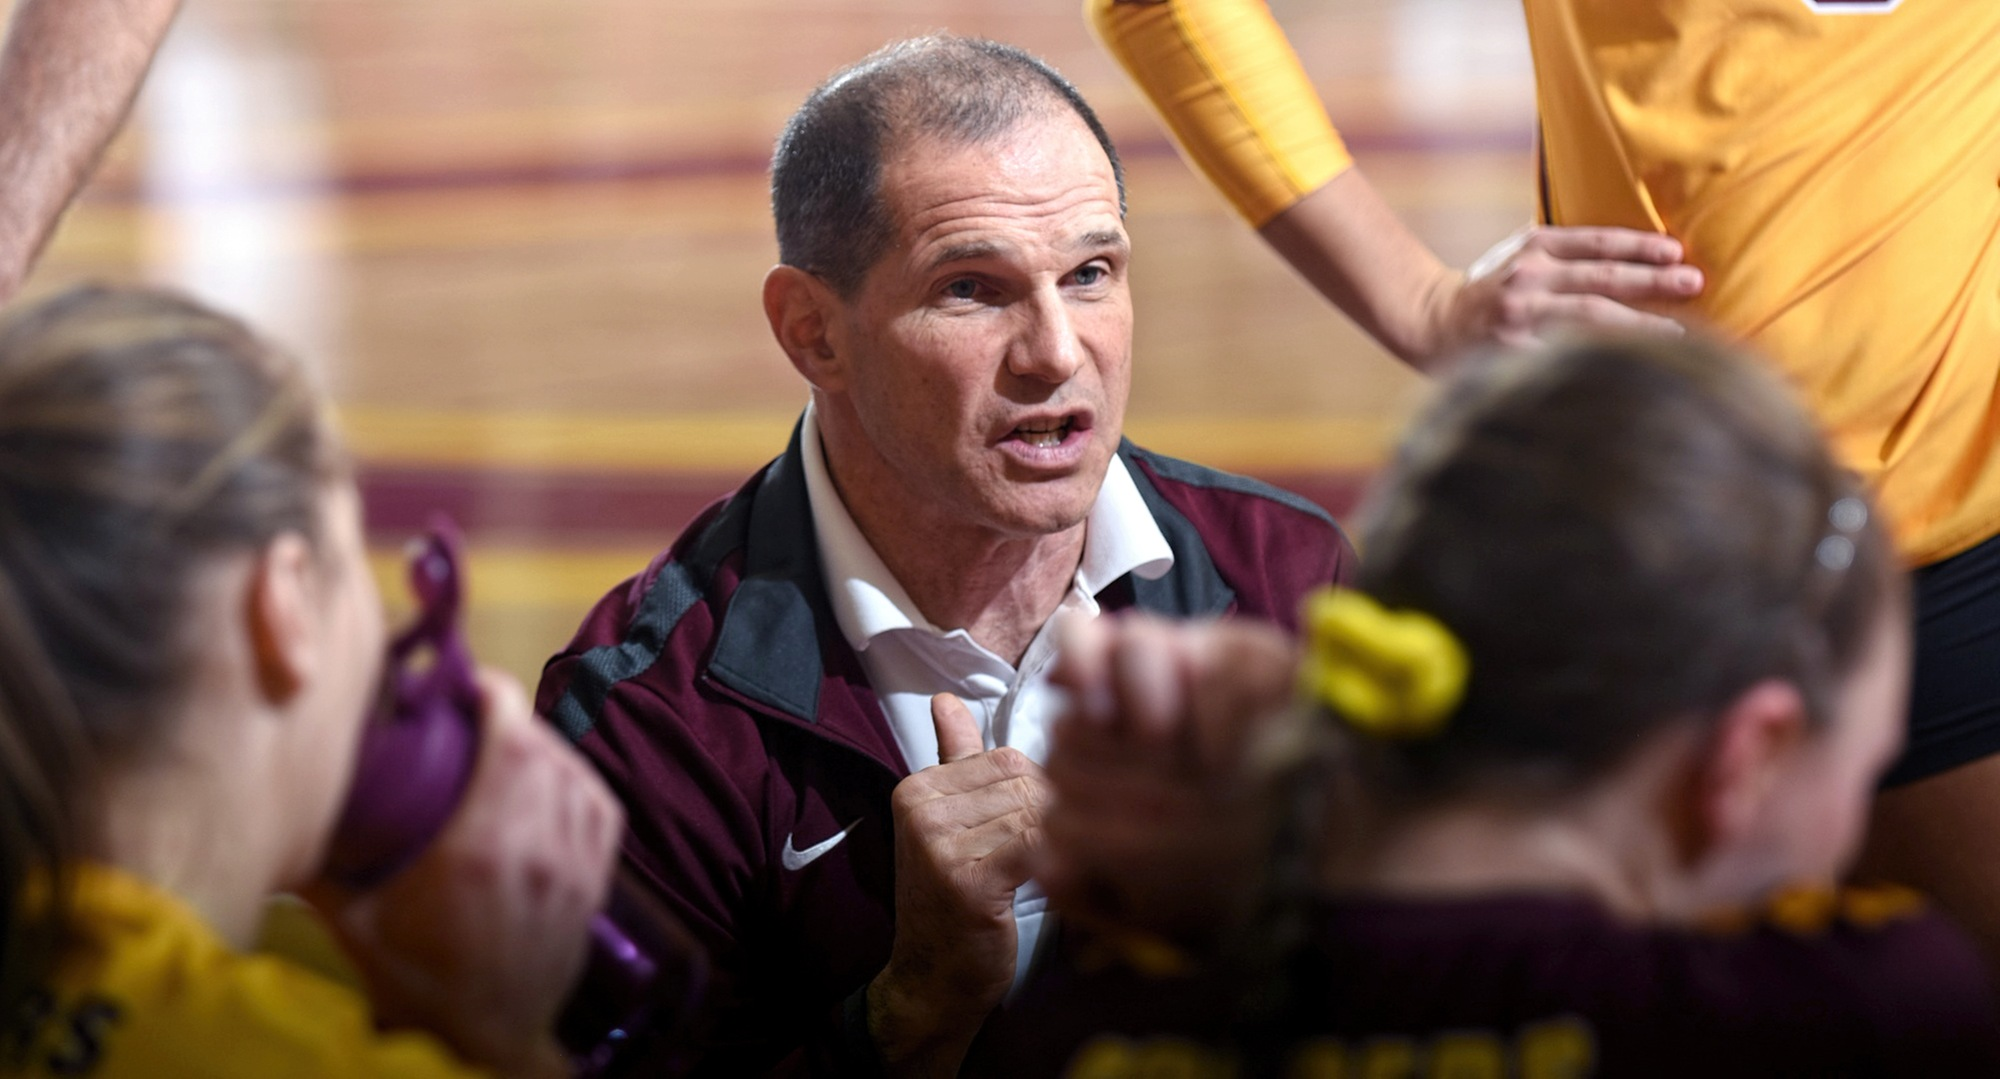 Tim Mosser announced his resignation as head coach of the Cobber volleyball team.